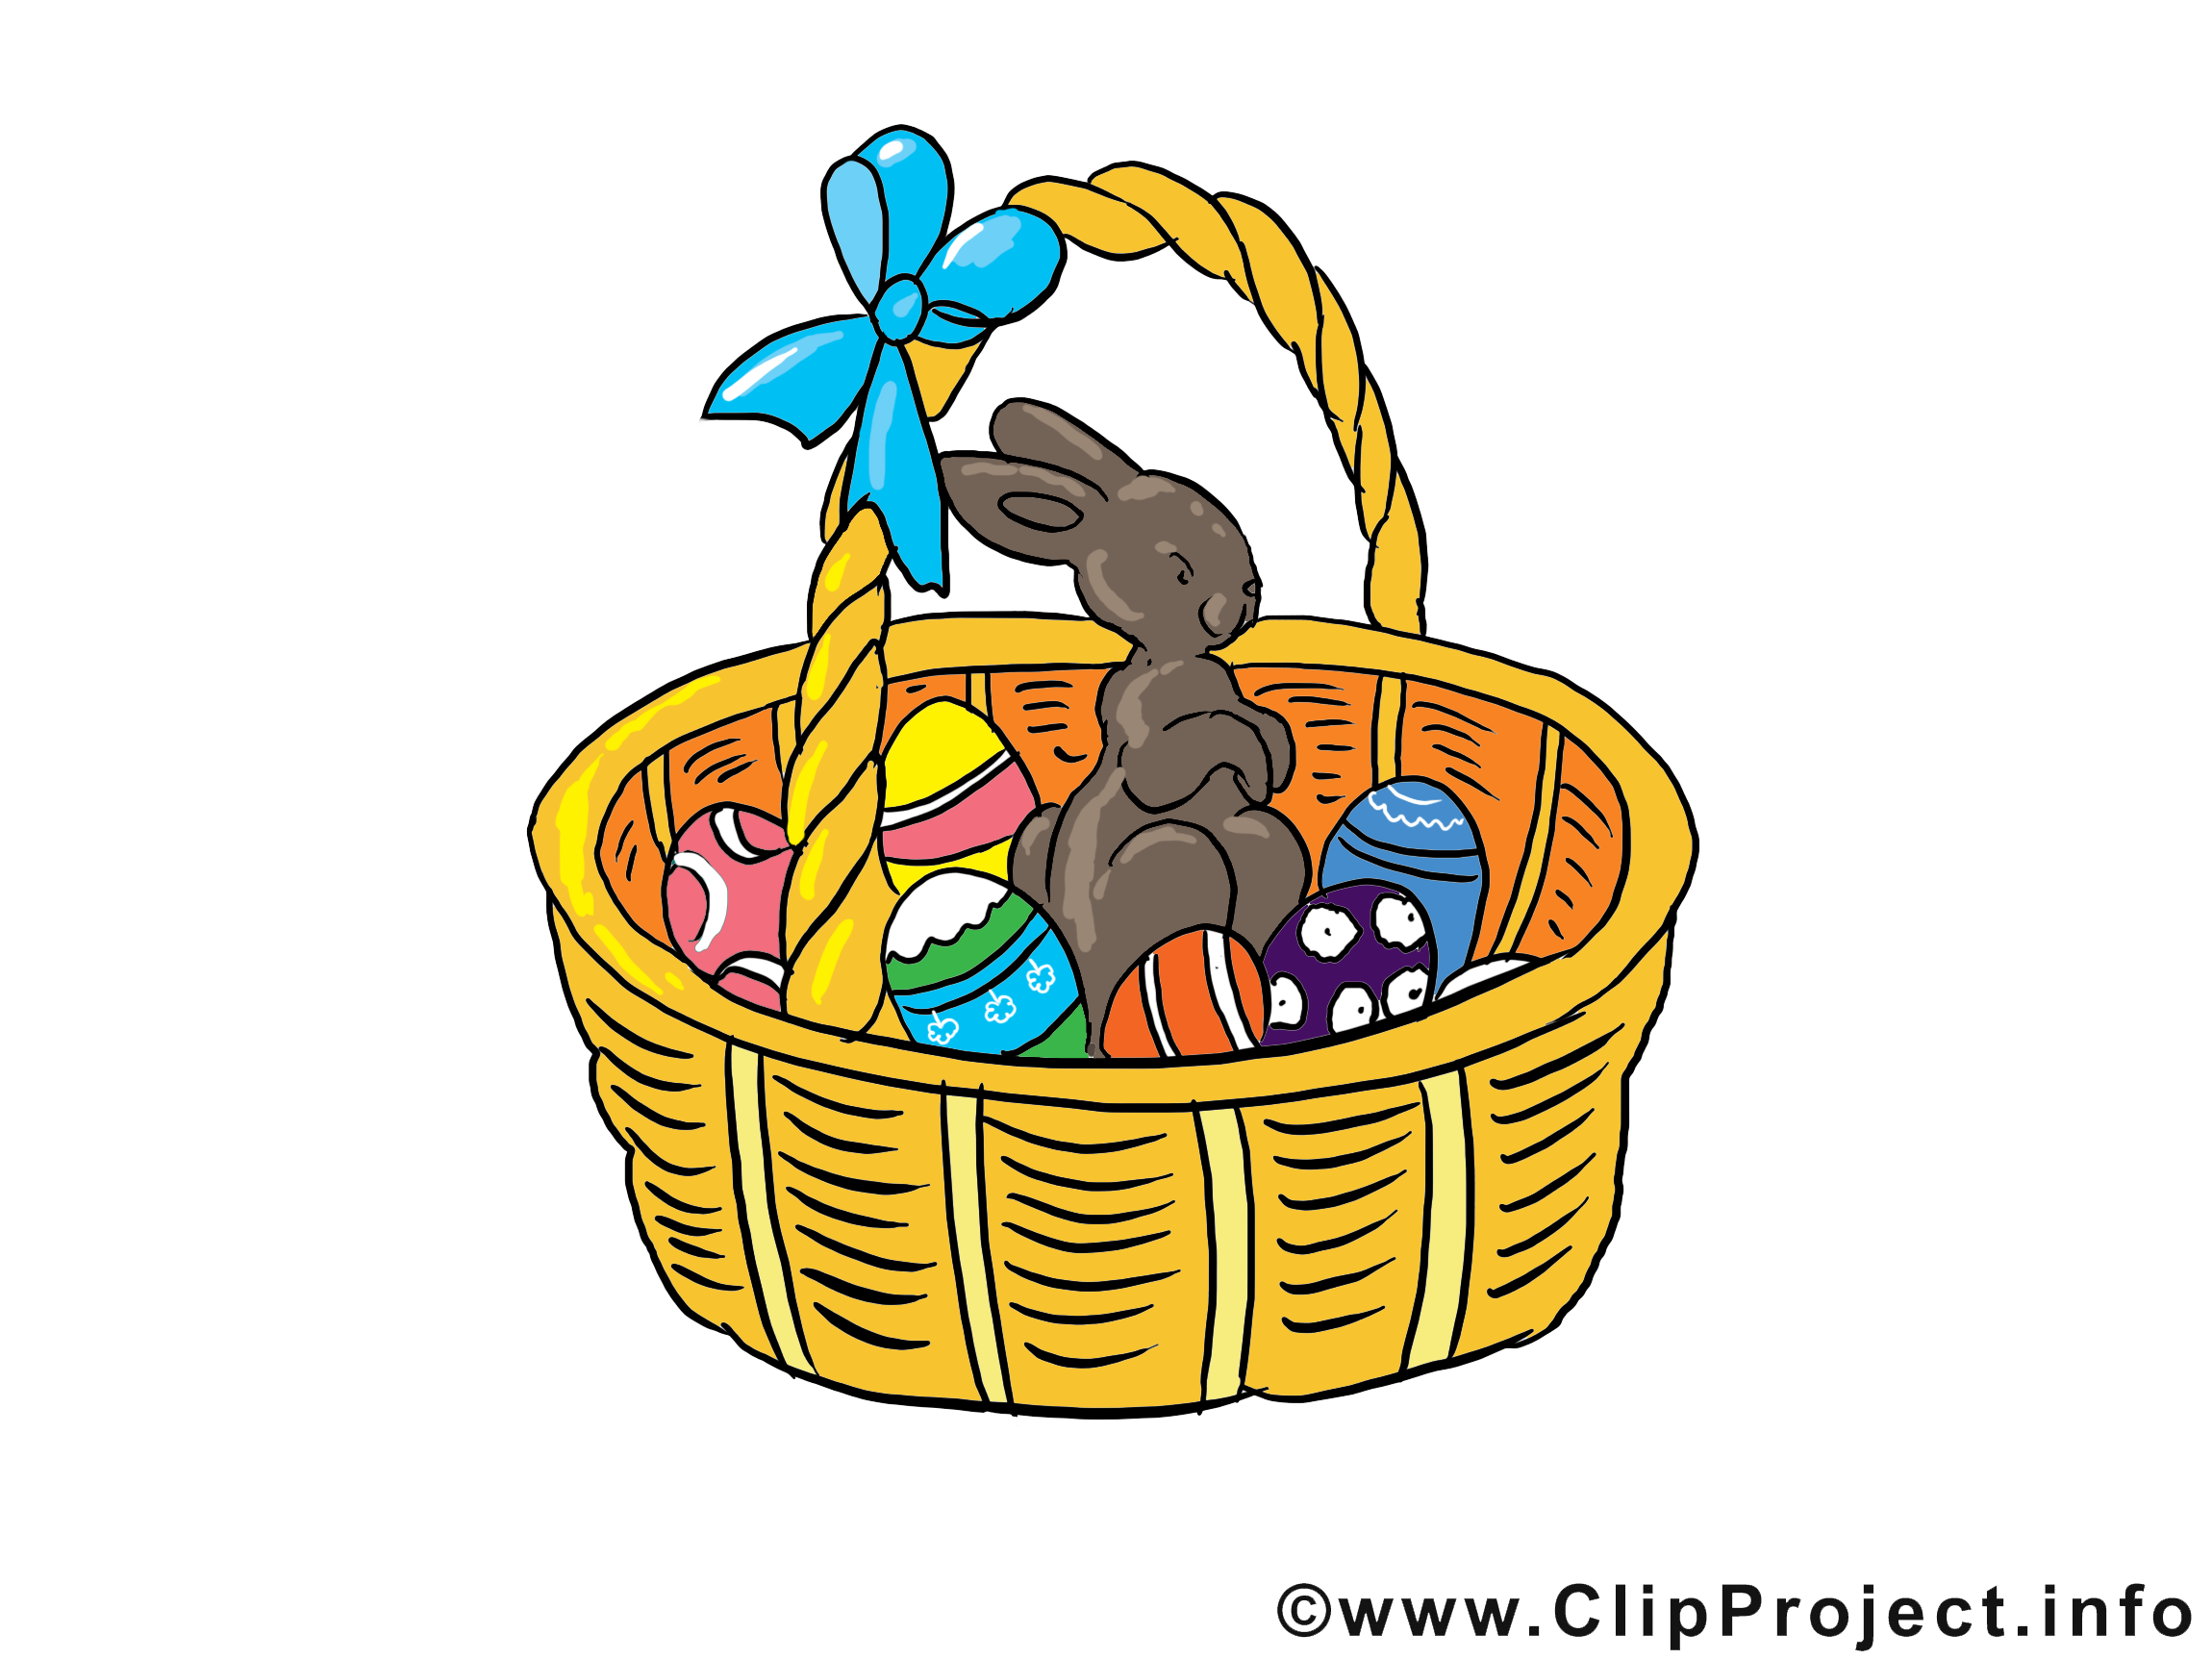 Osterkorb Clipart, Bild, Grusskarte, Illustration.